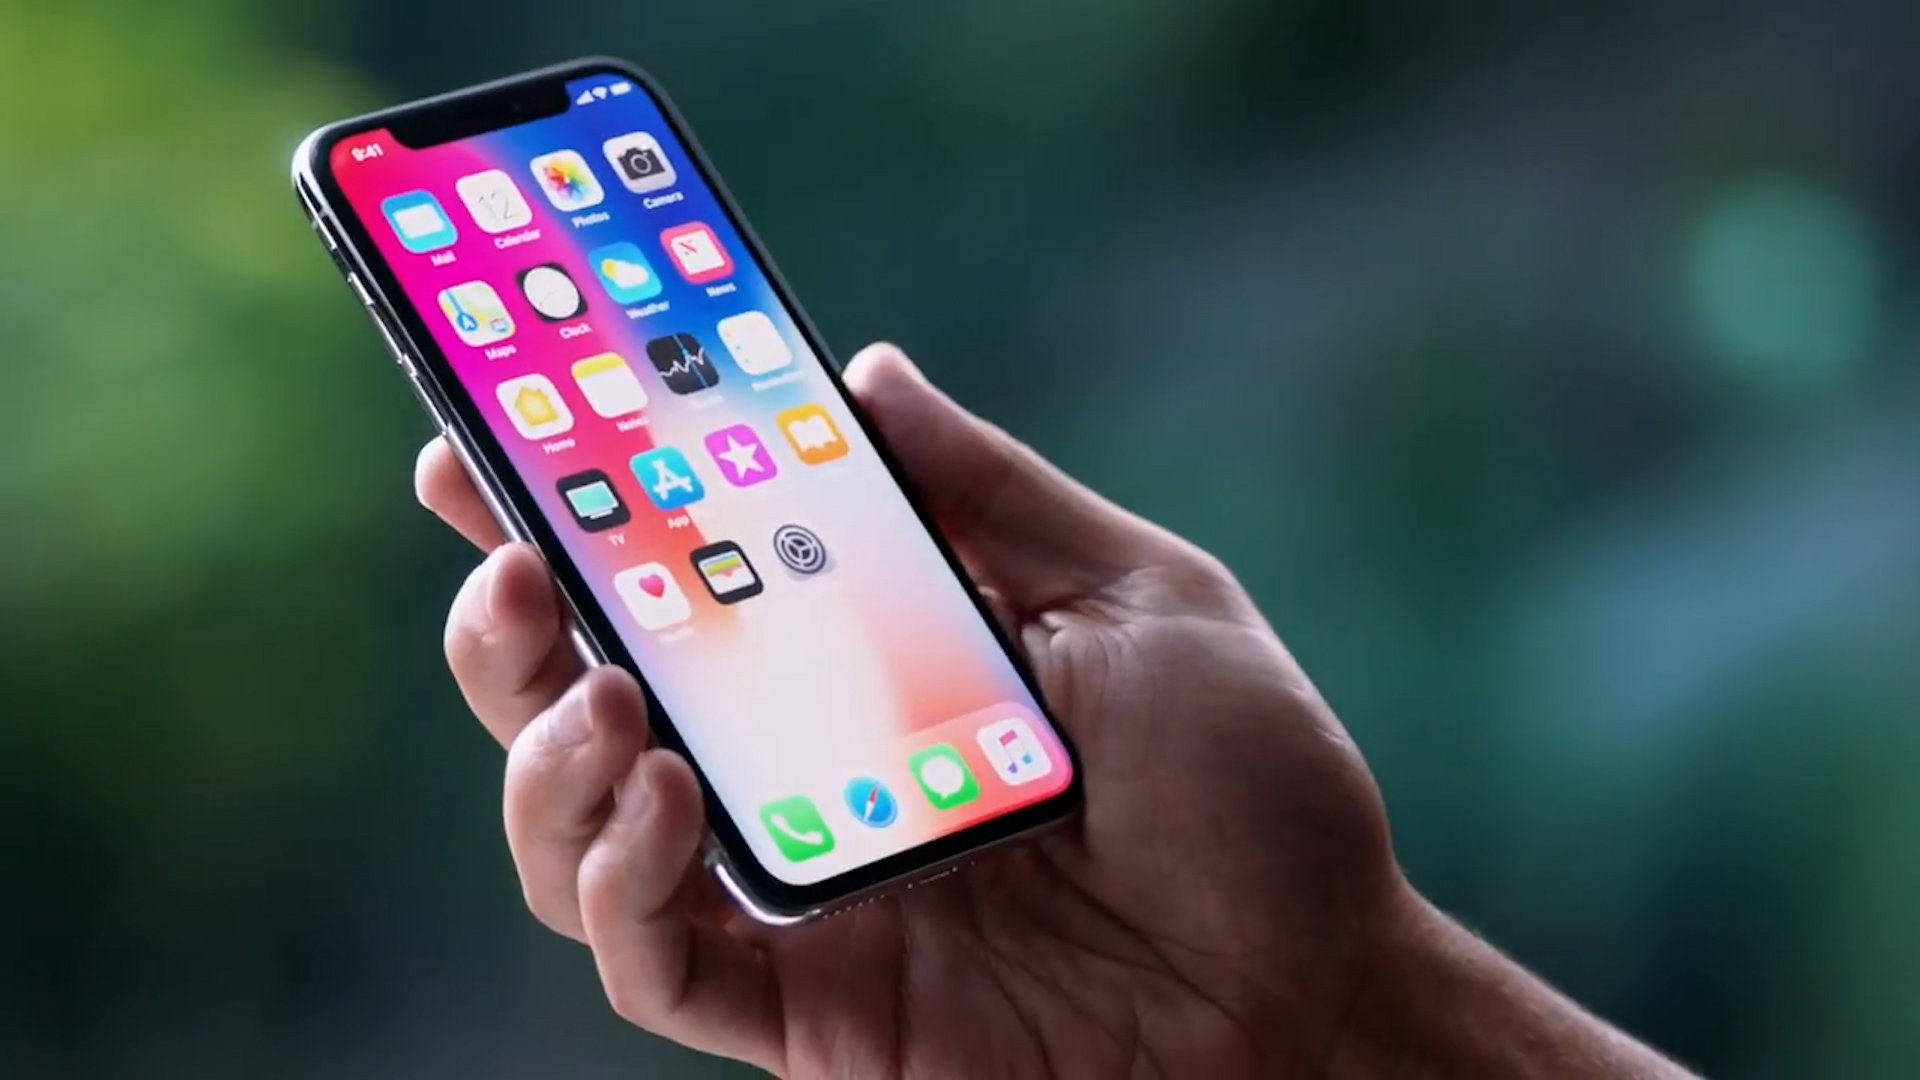 Hands on with the iPhone X https://t.co/4SRHefBZay #AppleEvent https://t.co/J8Ko55cvU7